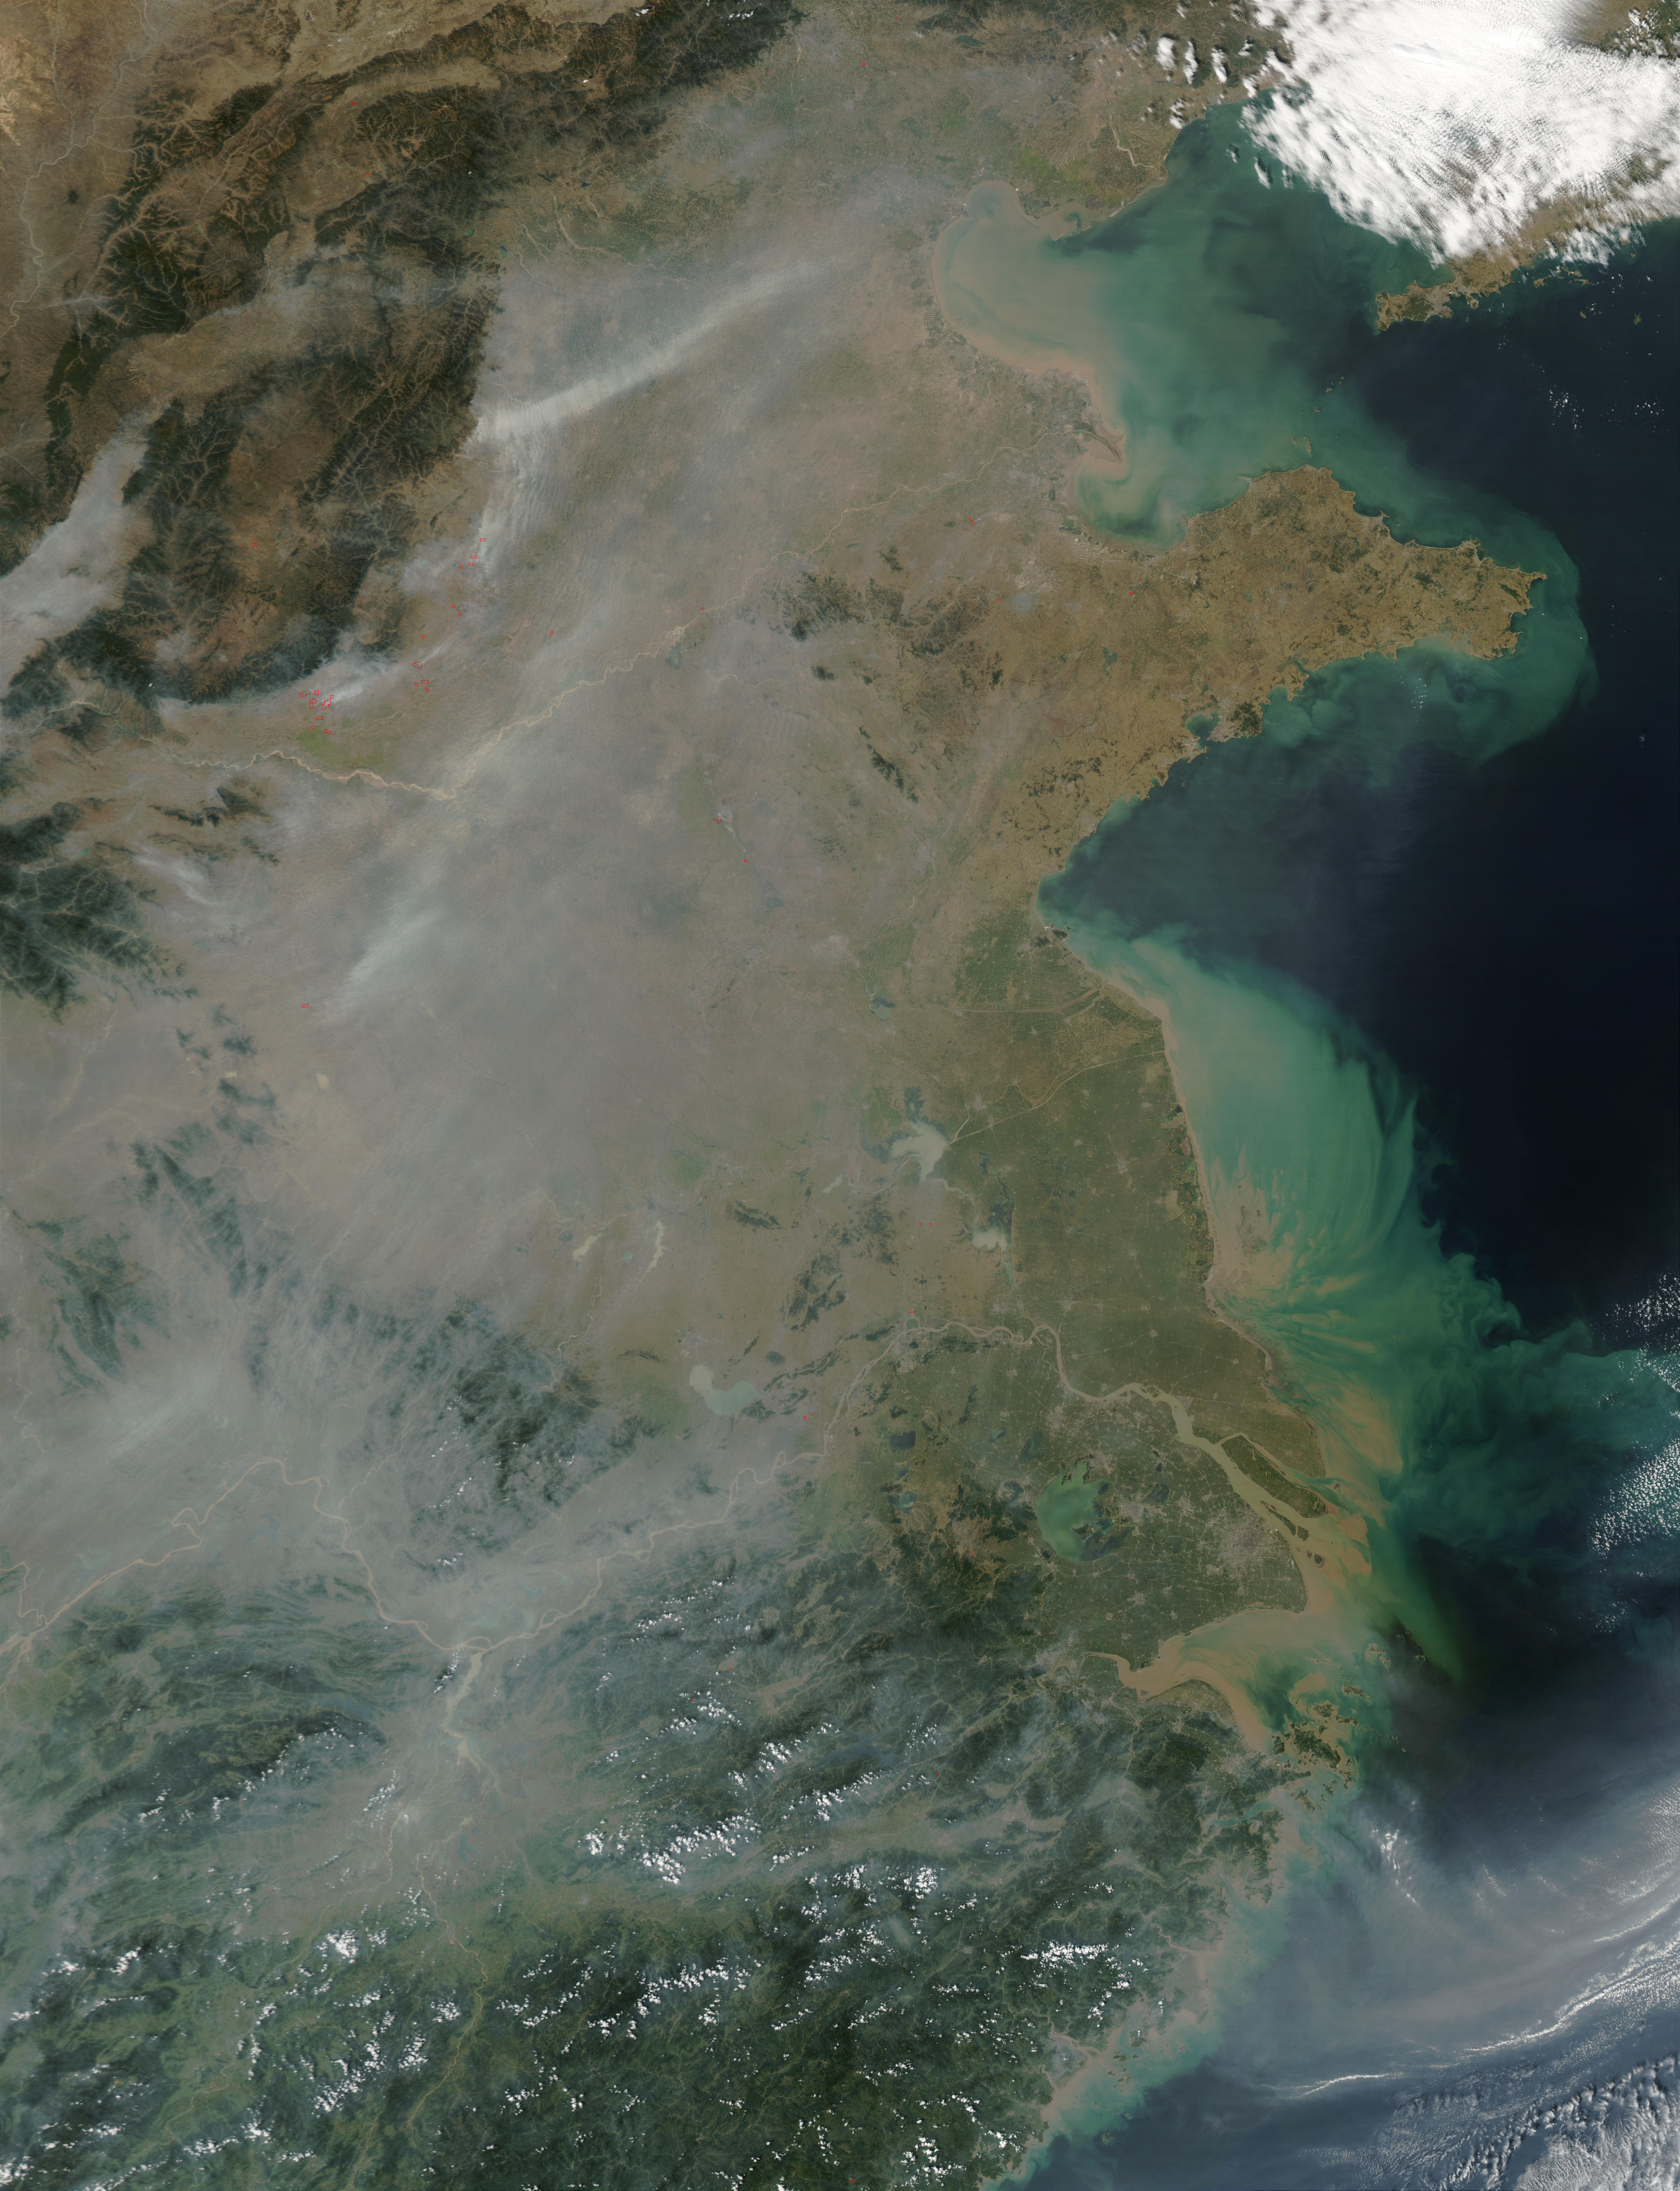 Smoke and pollution in Eastern China